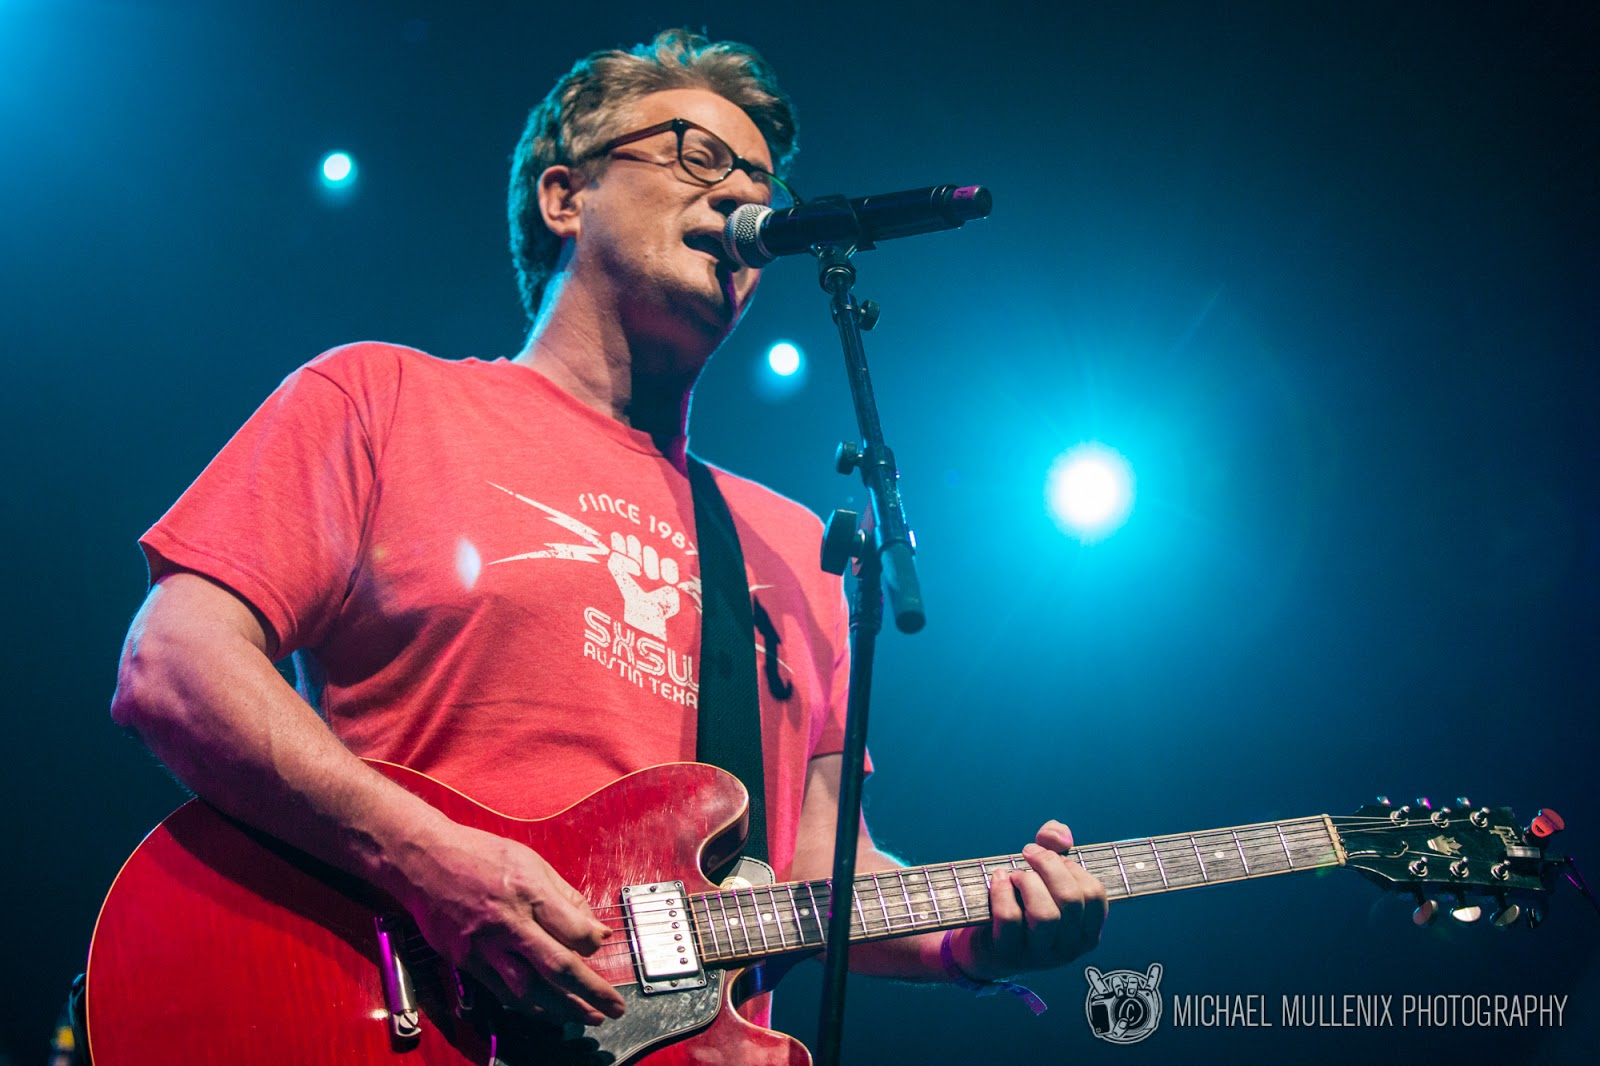 THE JOE SCARBOROUGH BAND AT SXSW 2016 - PHOTO GALLERY BY MICHAEL ...